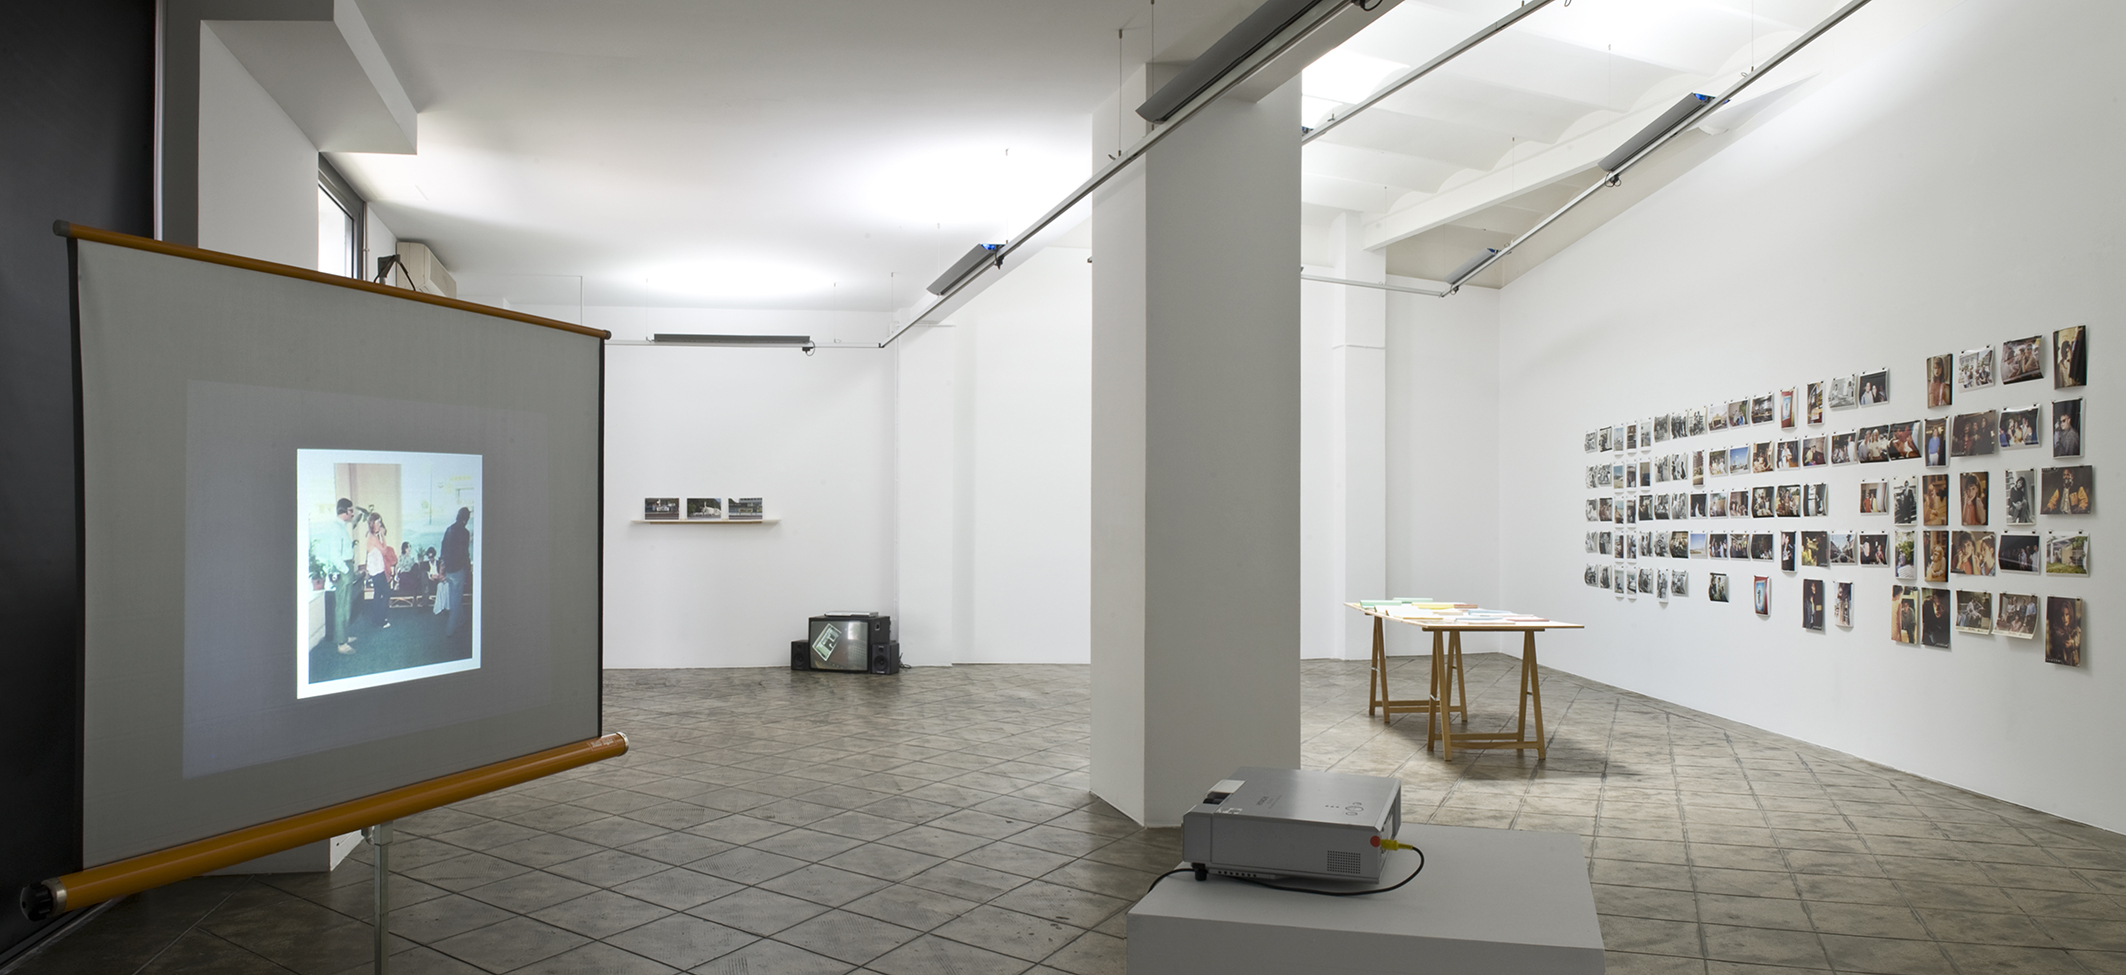 Installation view: The Umbrella Corner. Chapter 6, ProjecteSD, Barcelona, 2013. | The Umbrella Corner. Chapter 6 | ProjecteSD